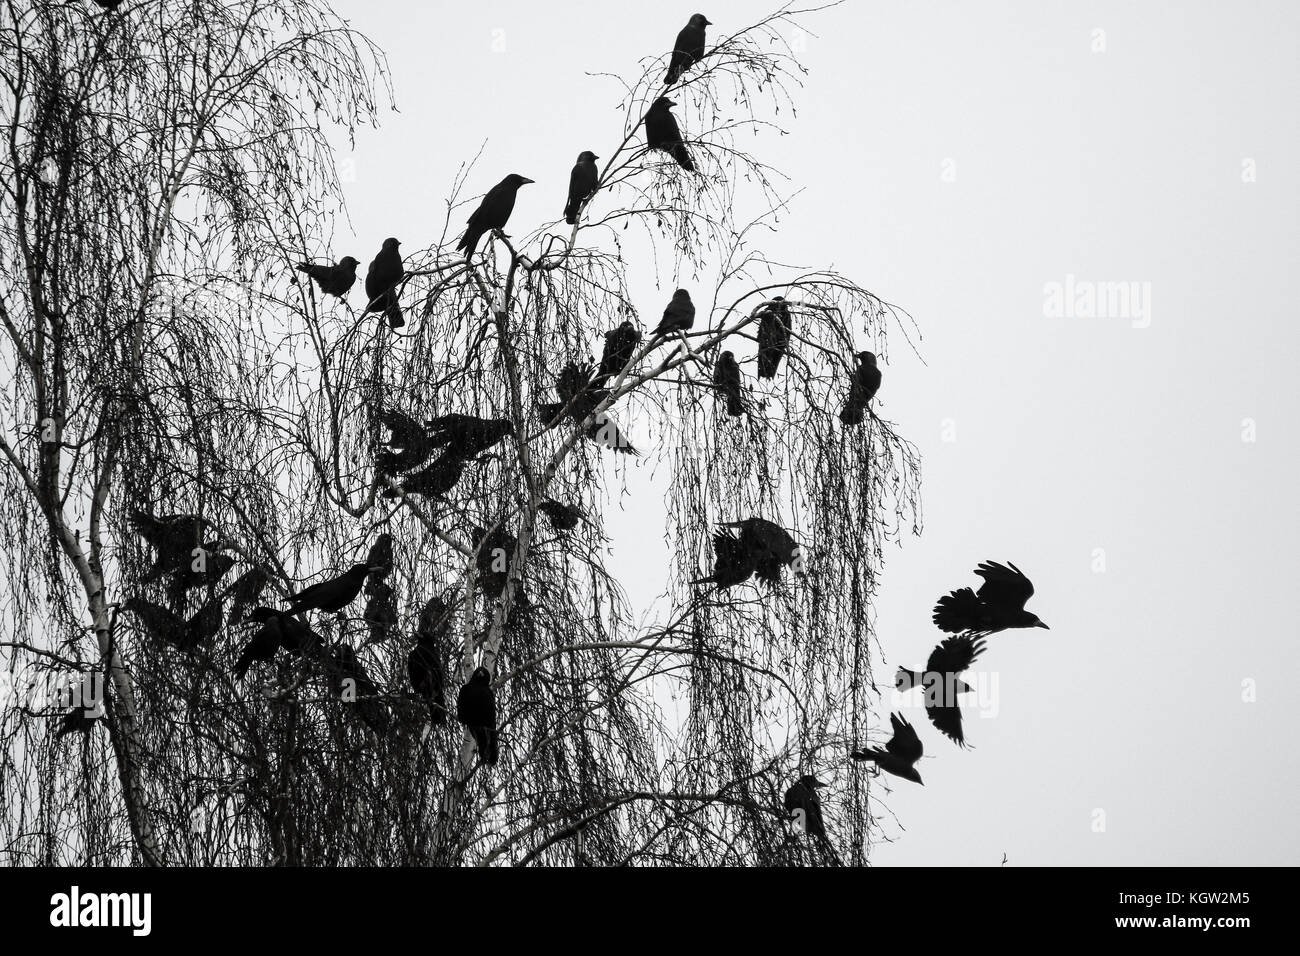 A flock of crows sitting on the tree during the gloomy winter day. Stock Photo